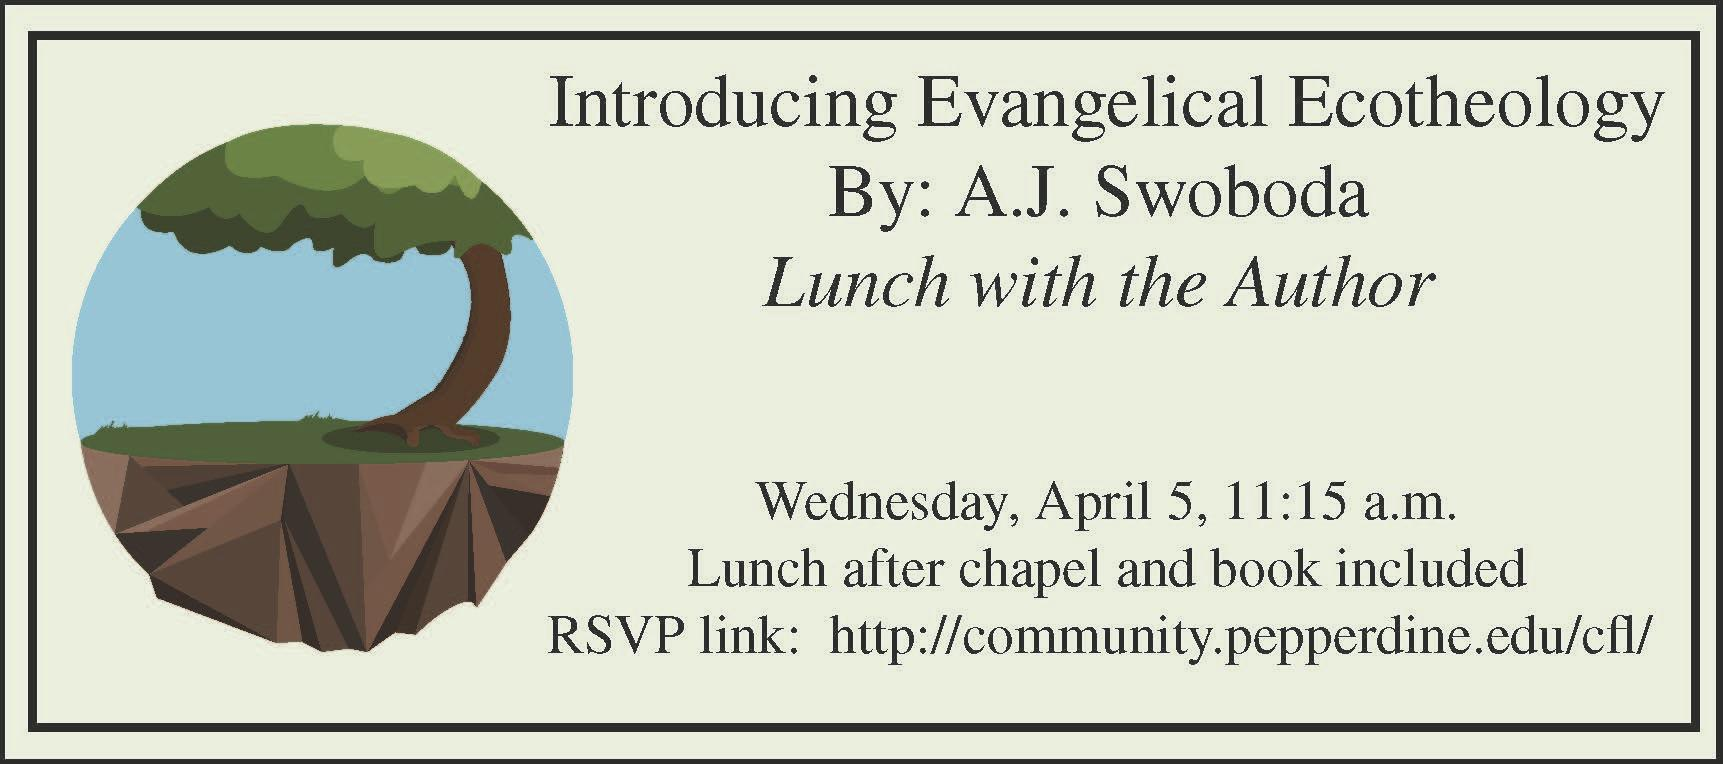 Evangelical Ecotheology Lunch with the Author